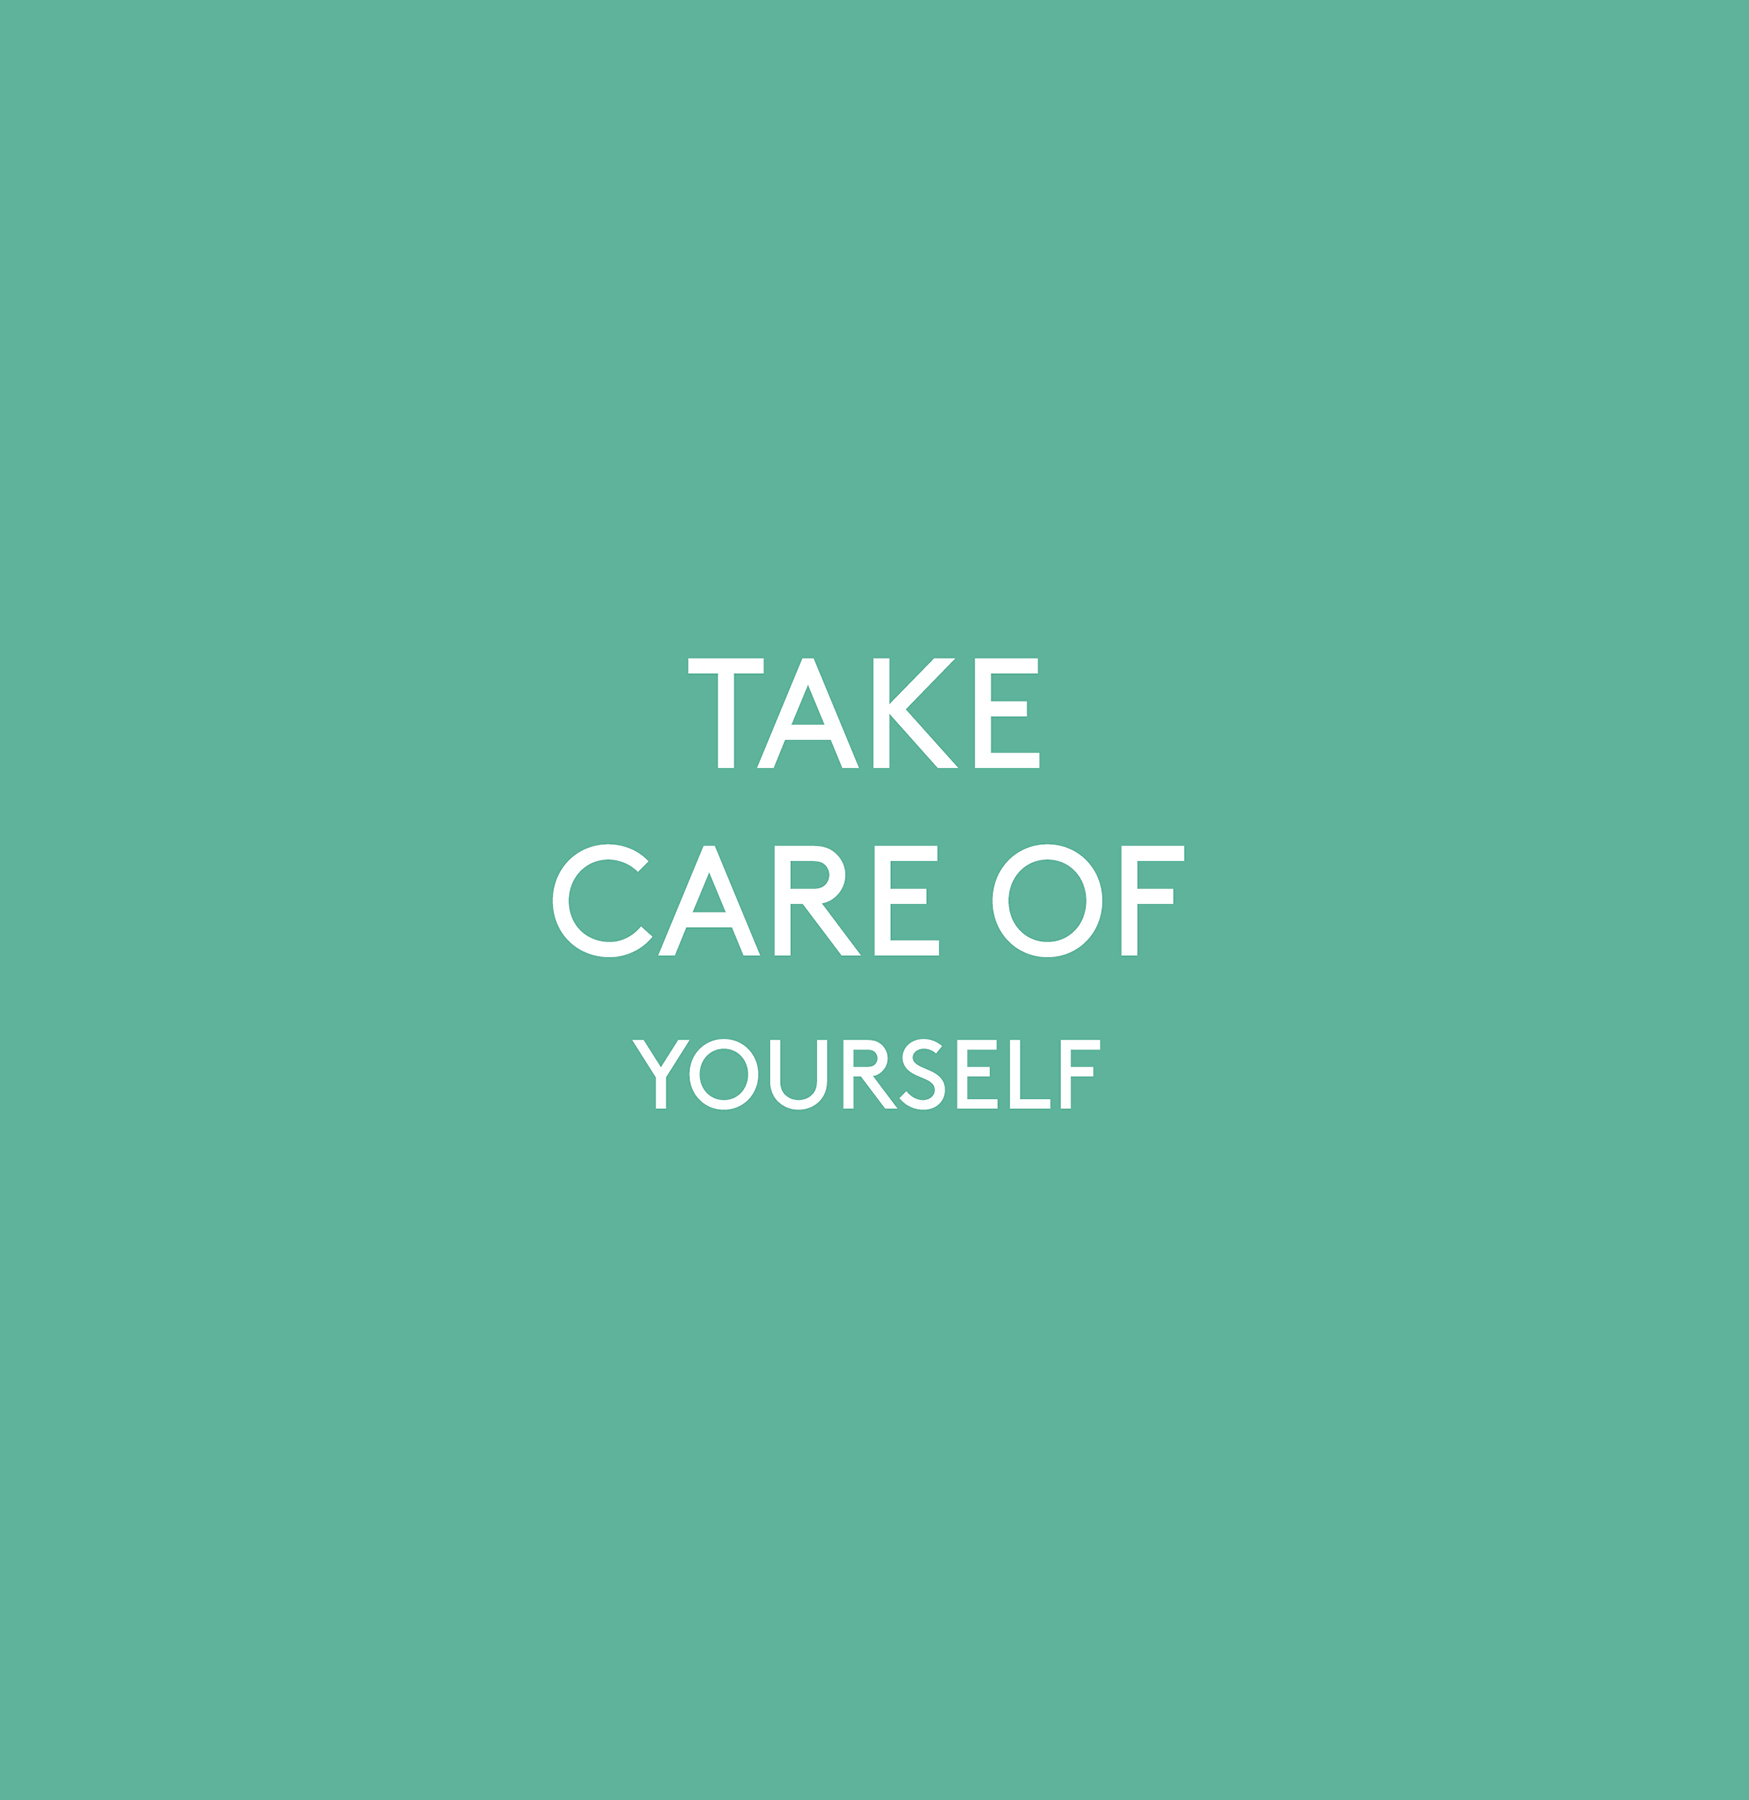 But You Have to Take Care of Yourself First